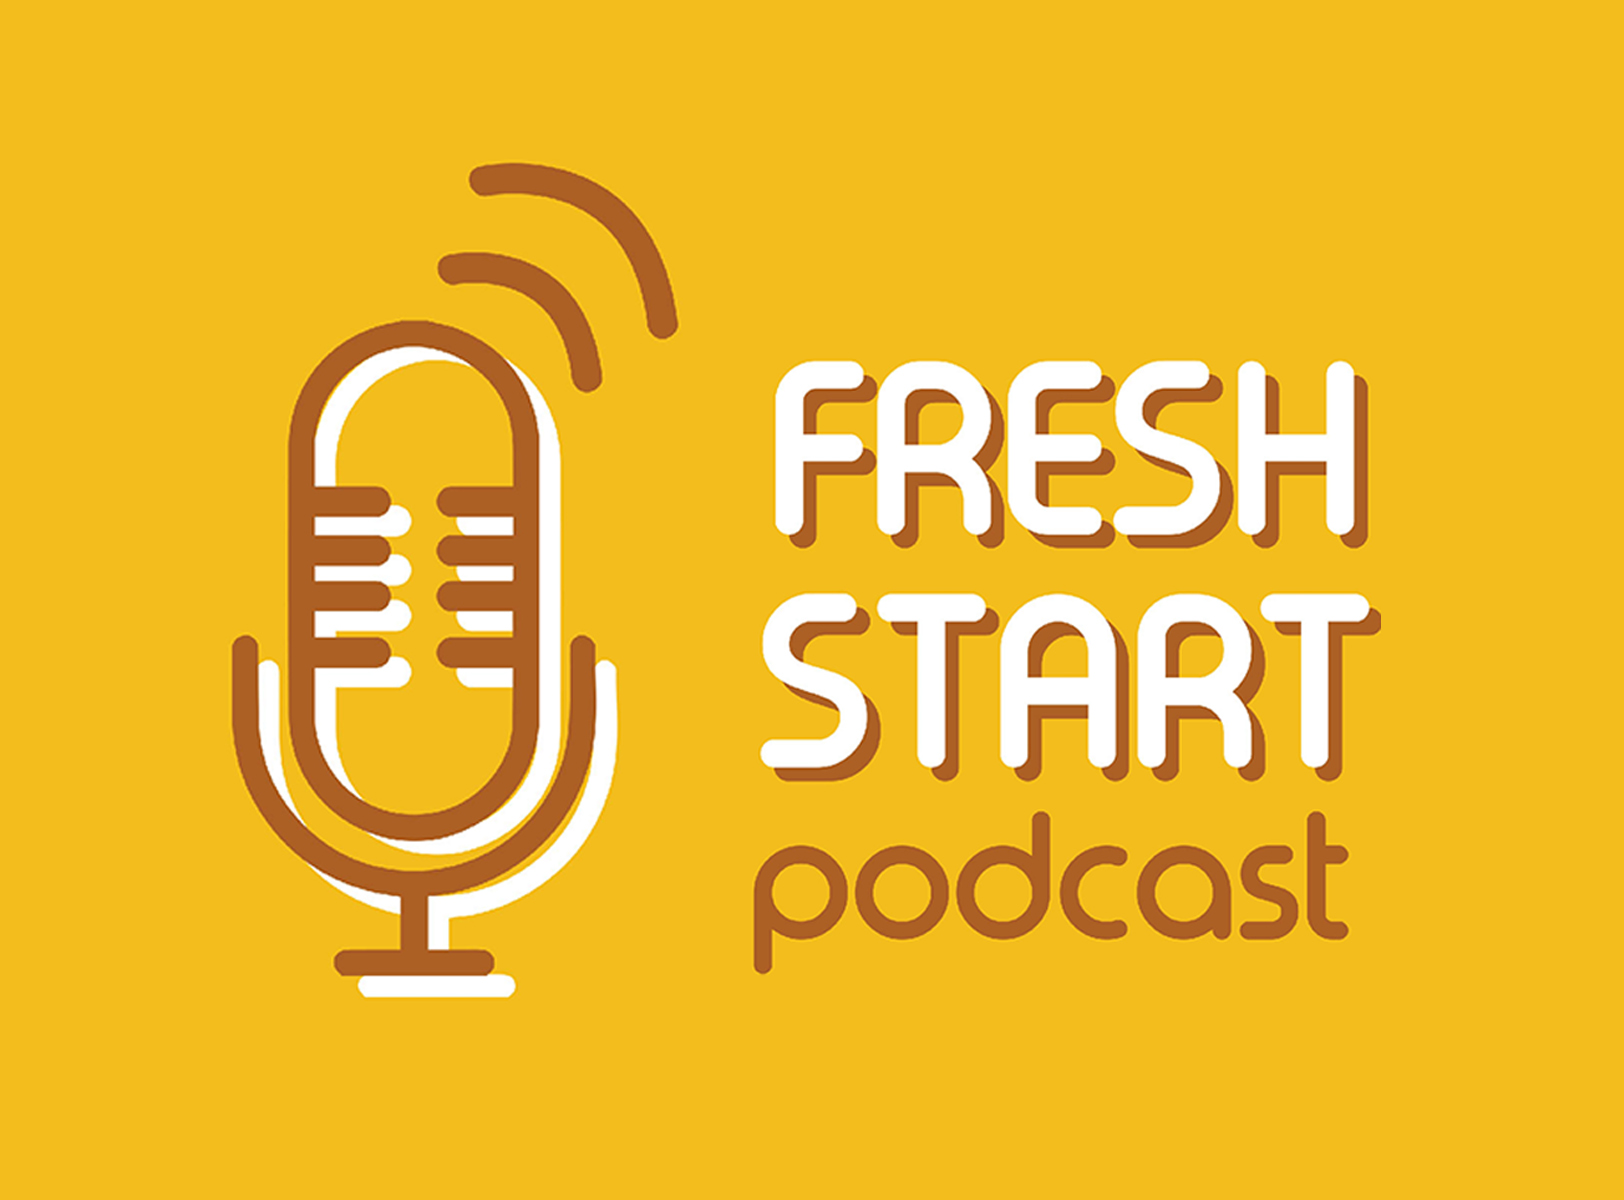 Fresh Start: Podcast News (01/04/2019 Fri.)